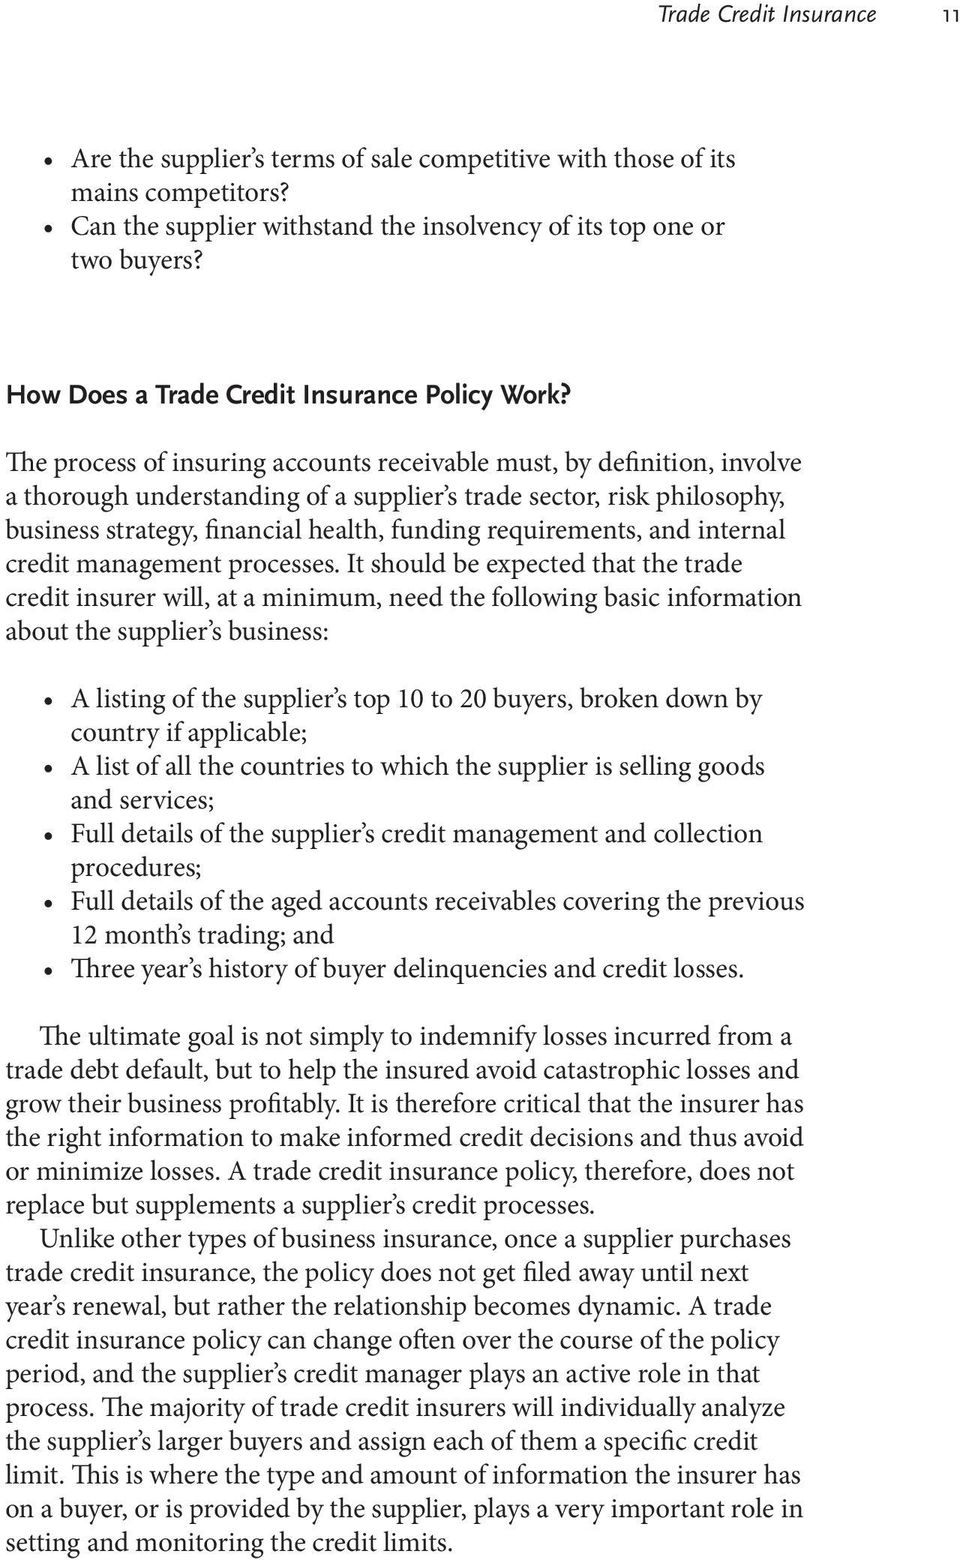 The process of insuring accounts receivable must, by definition, involve a thorough understanding of a supplier s trade sector, risk philosophy, business strategy, financial health, funding